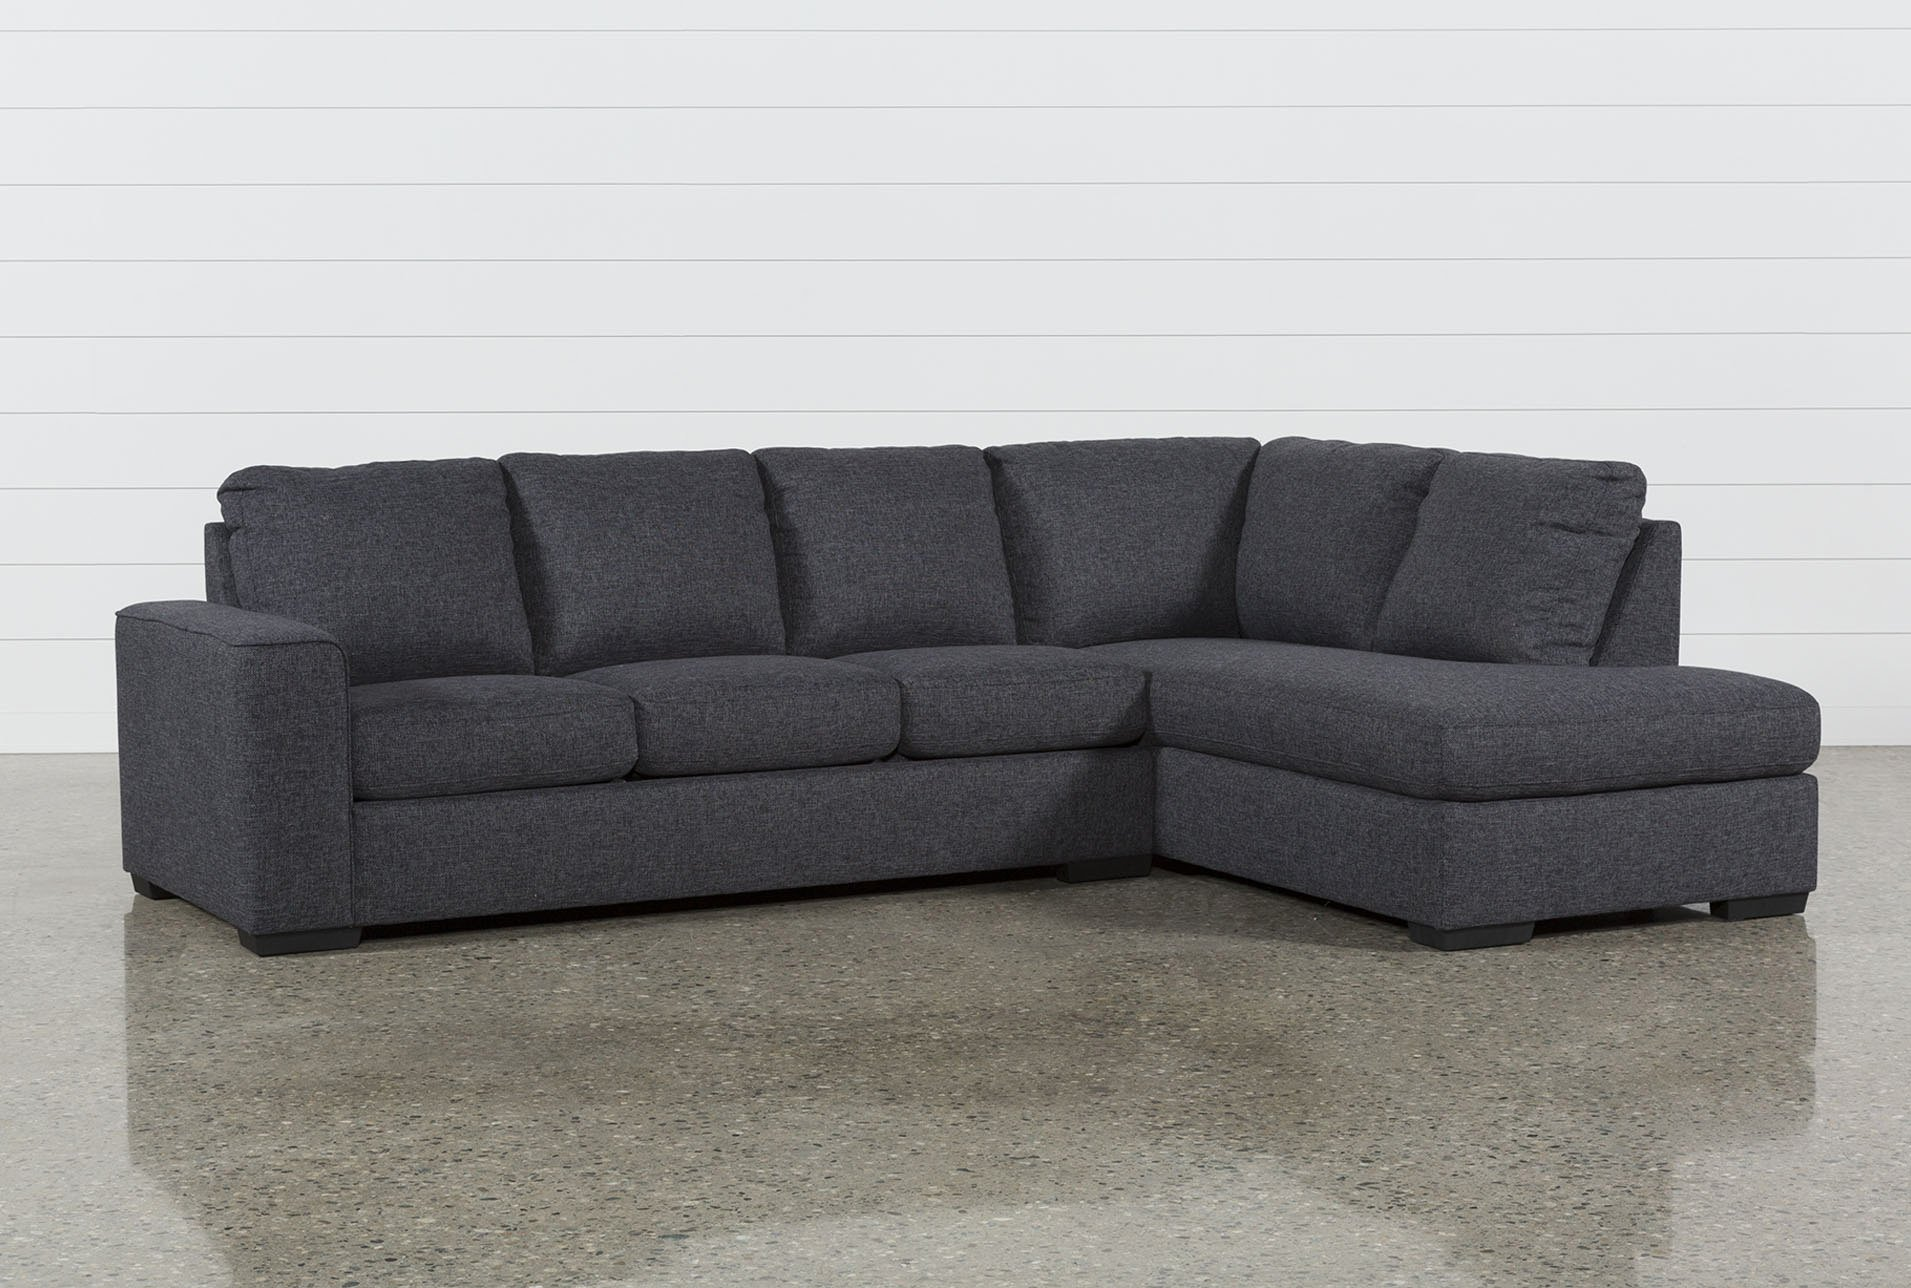 Enjoy the luxury and relaxing   feel of comfort using a sectional sleeper sofa